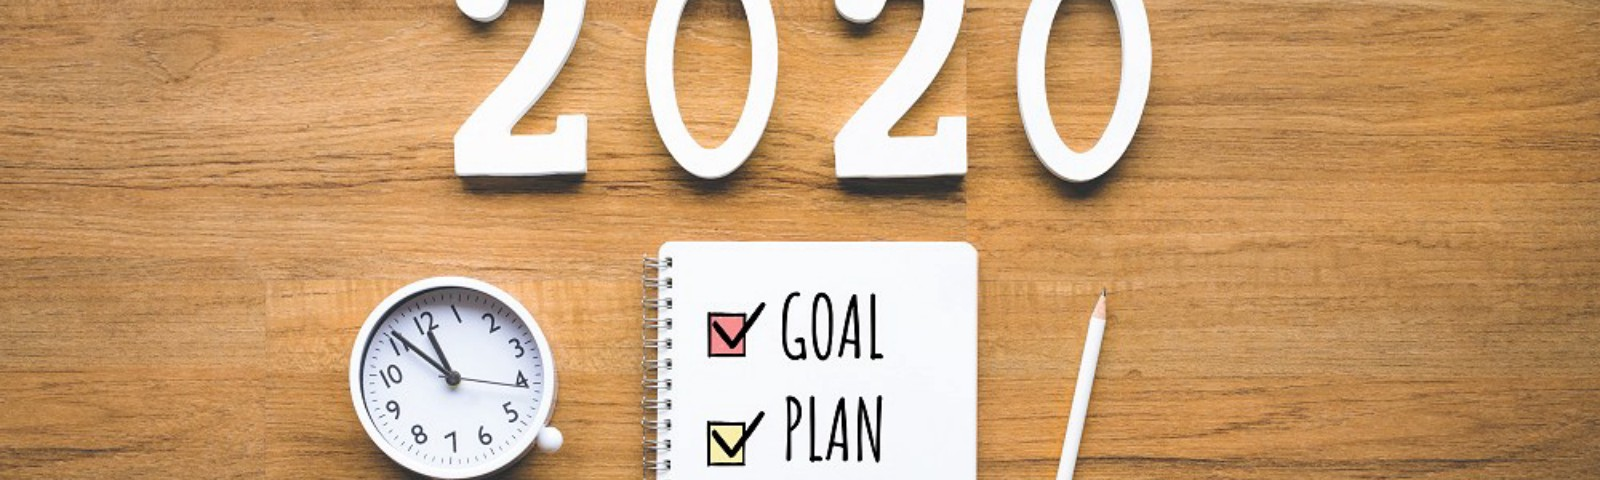 How to set great goals for the new year without becoming obsessive